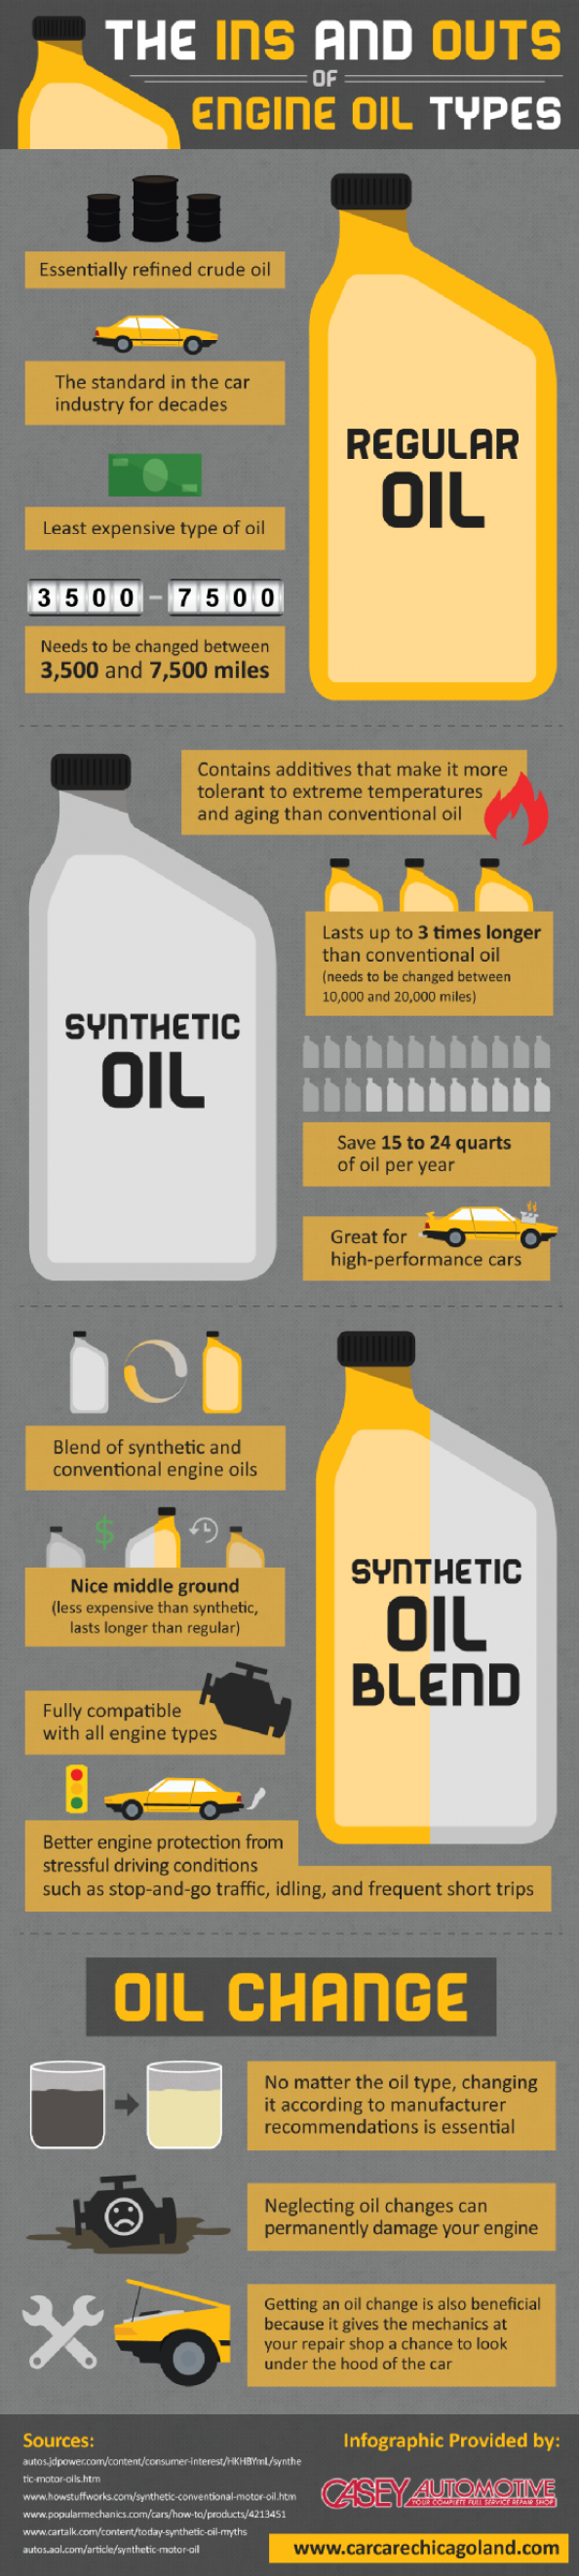 The Ins And Outs Of Engine Oil Types